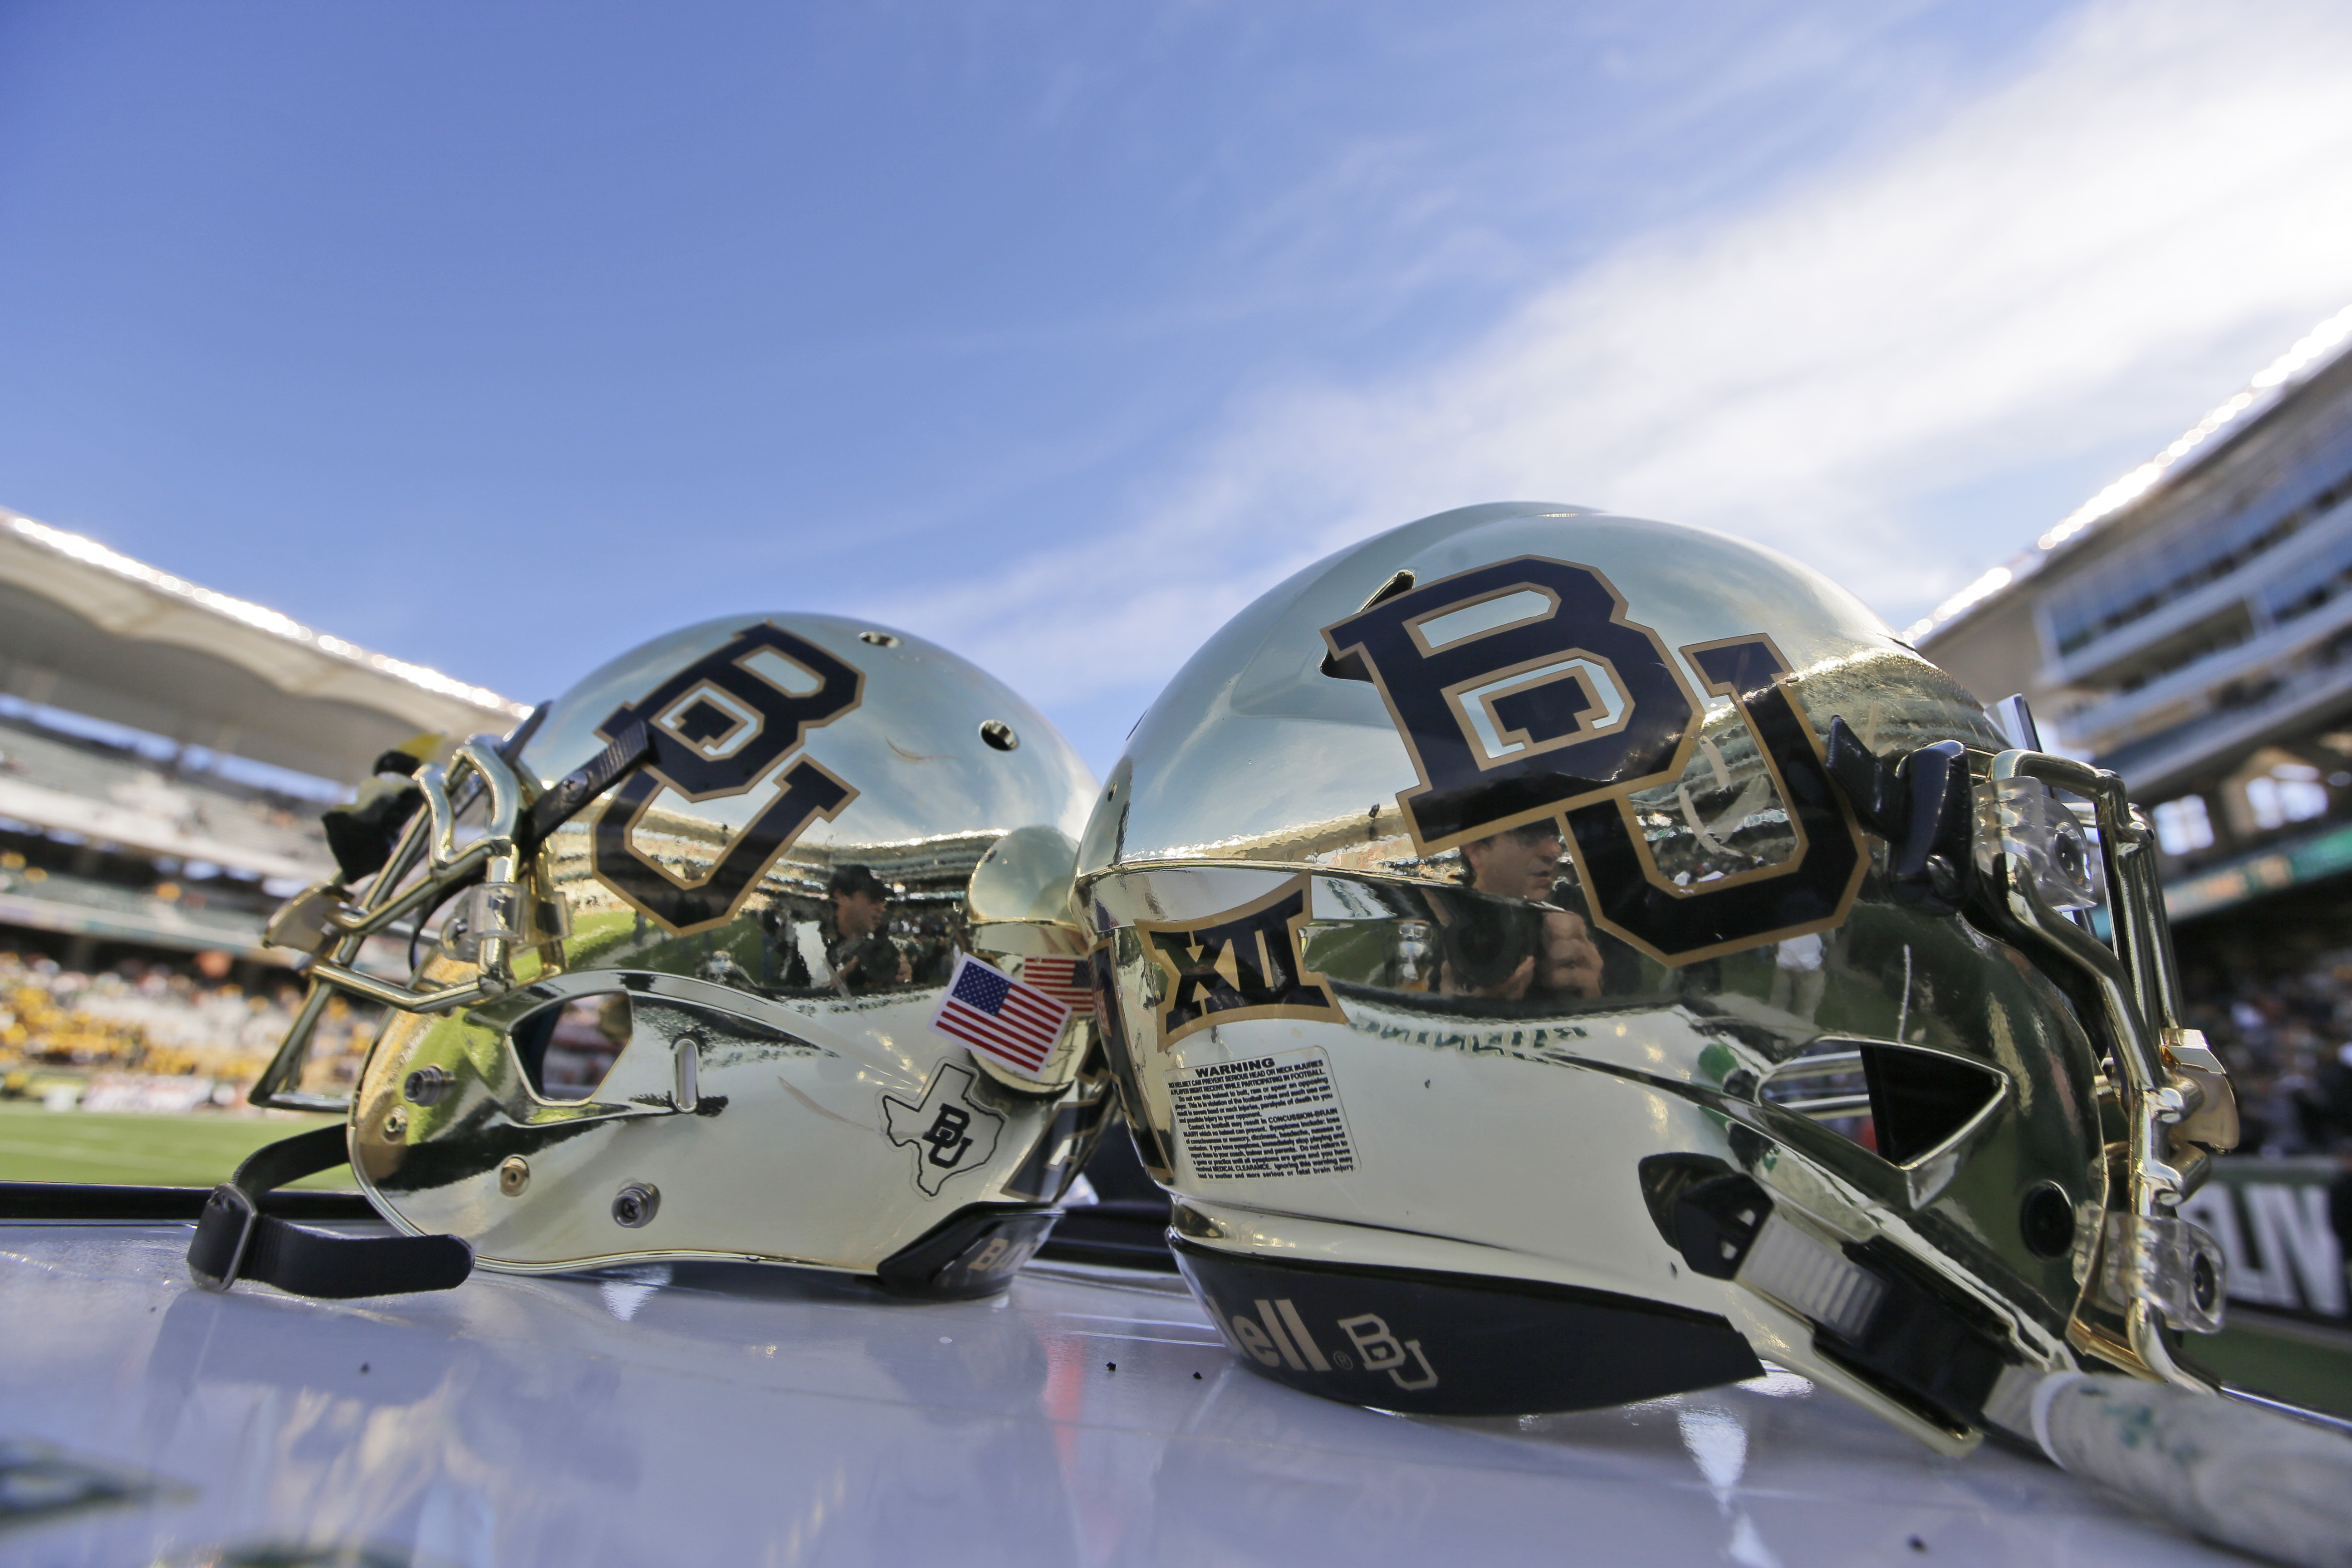 FILE - In this Dec. 5, 2015, file photo, Baylor helmets on shown the field after an NCAA college football game in Waco, Texas. Baylor University will look to rebuild its reputation and perhaps its football program after an outside review found administrat